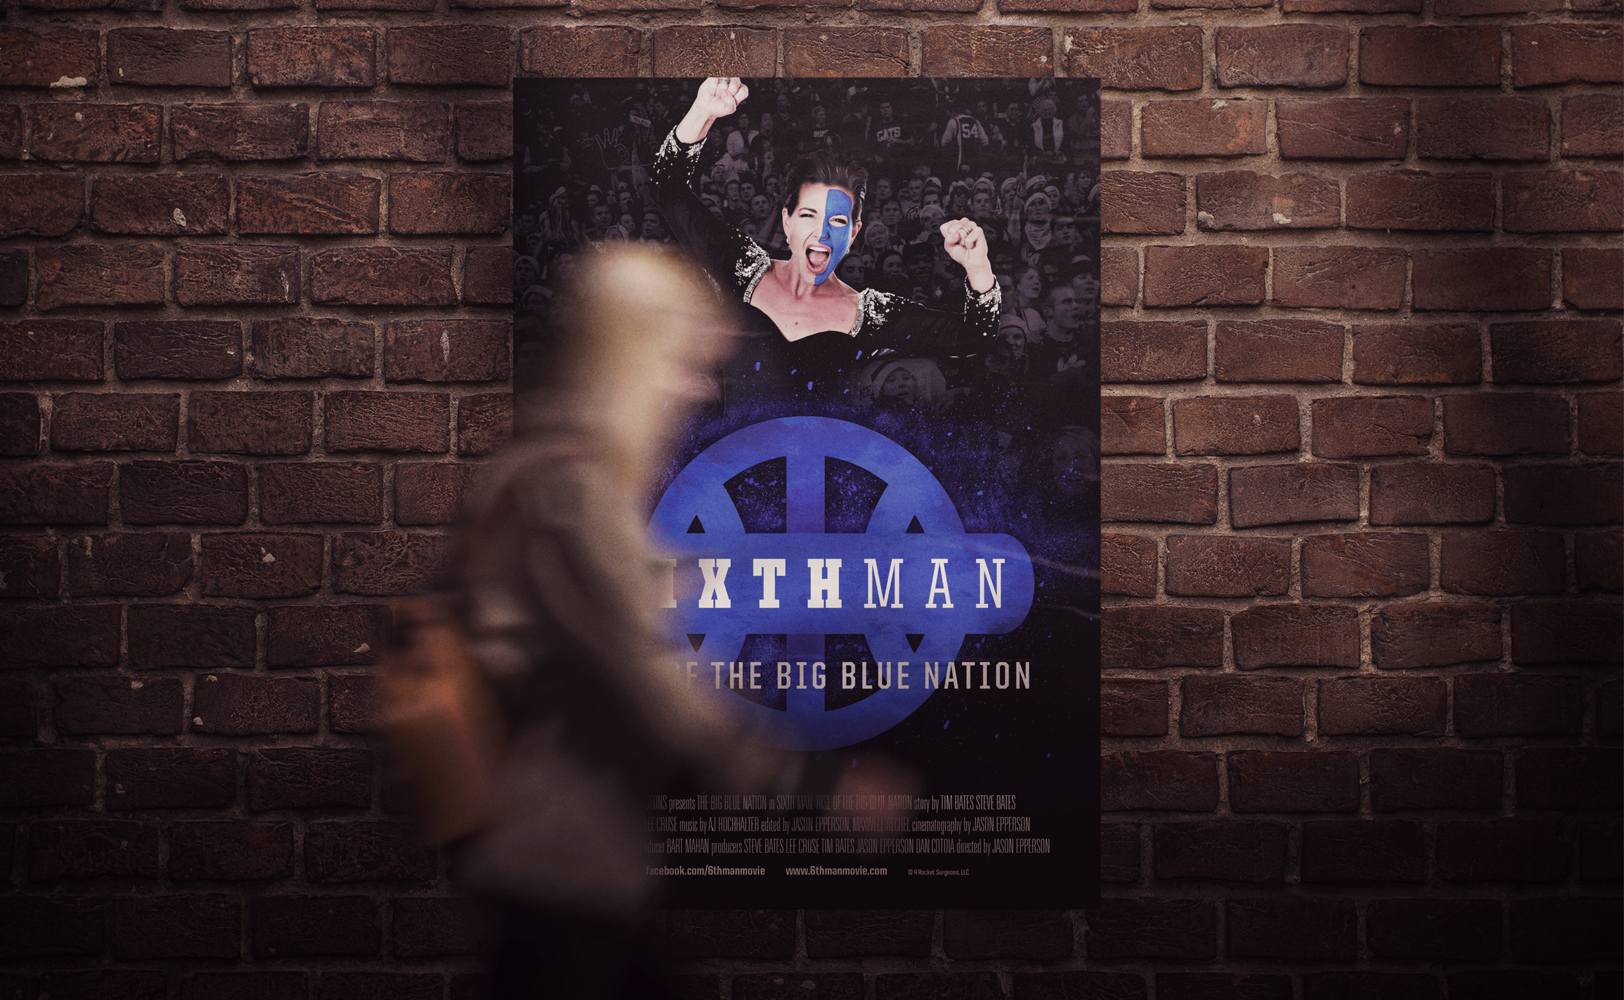 Sports design of The Sixth Man documentary Miss Kentucky film poster